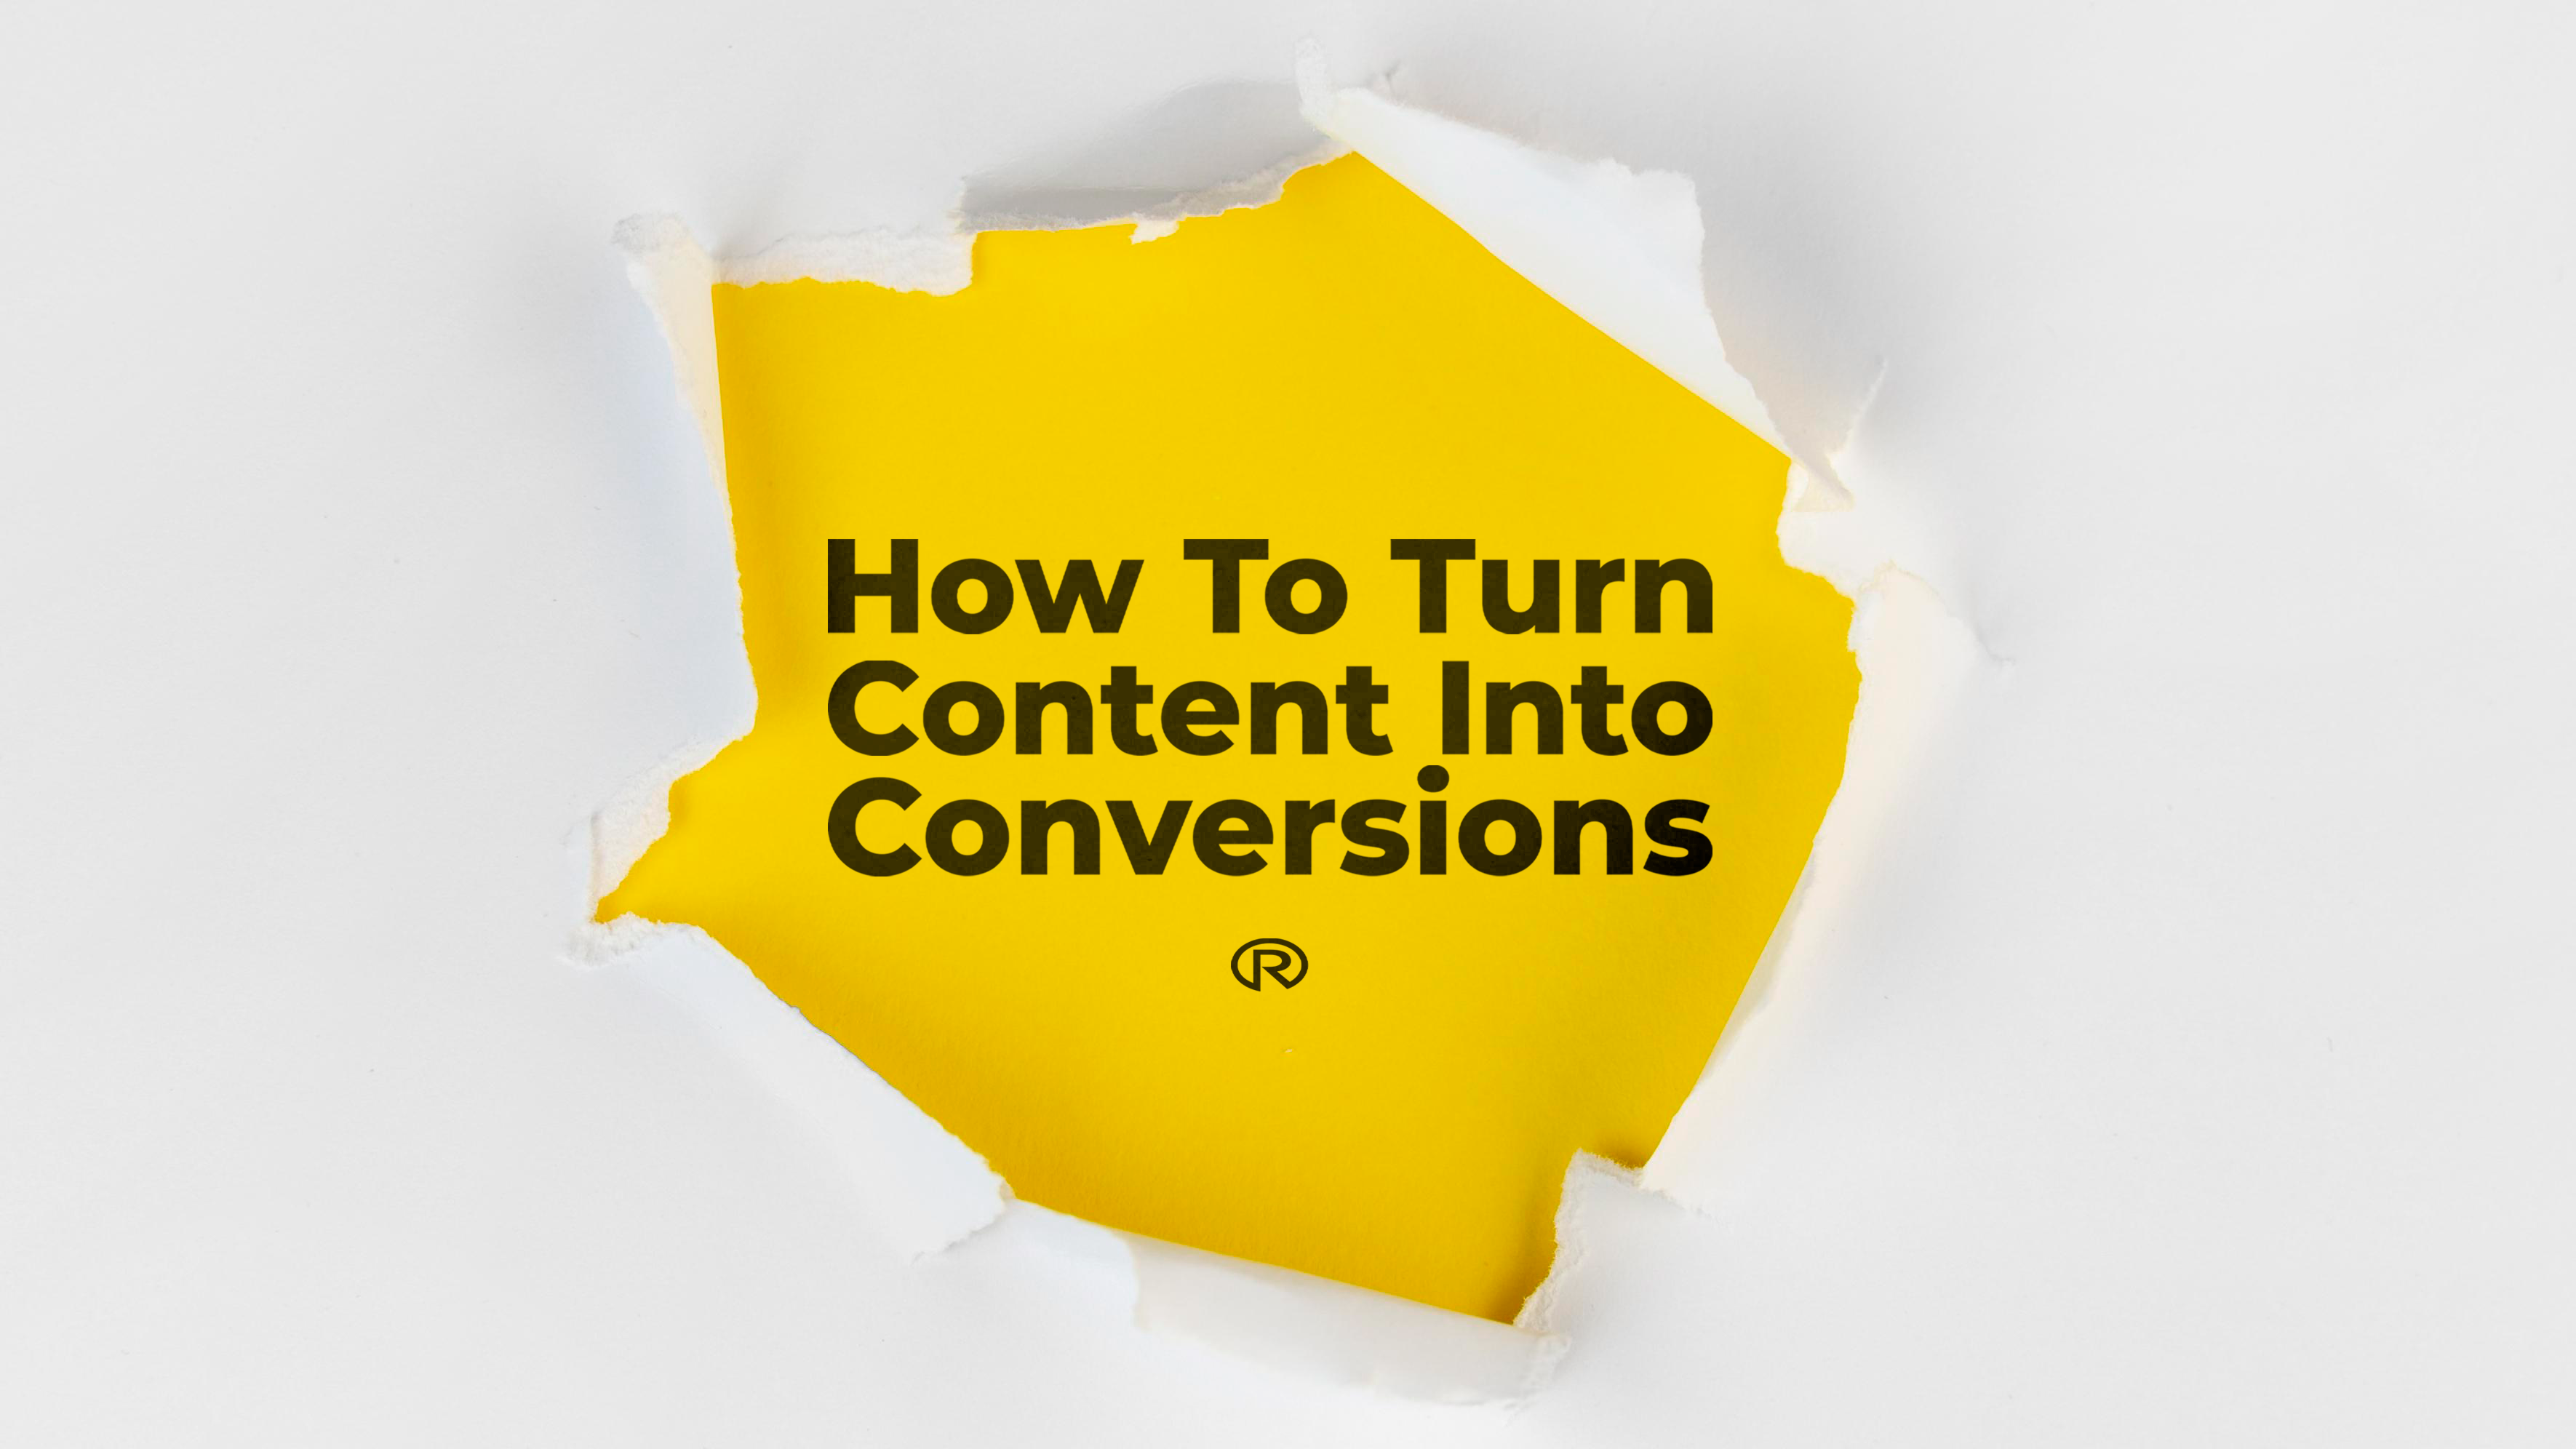 How To Turn Content Into Conversions (Content Marketing Strategies)